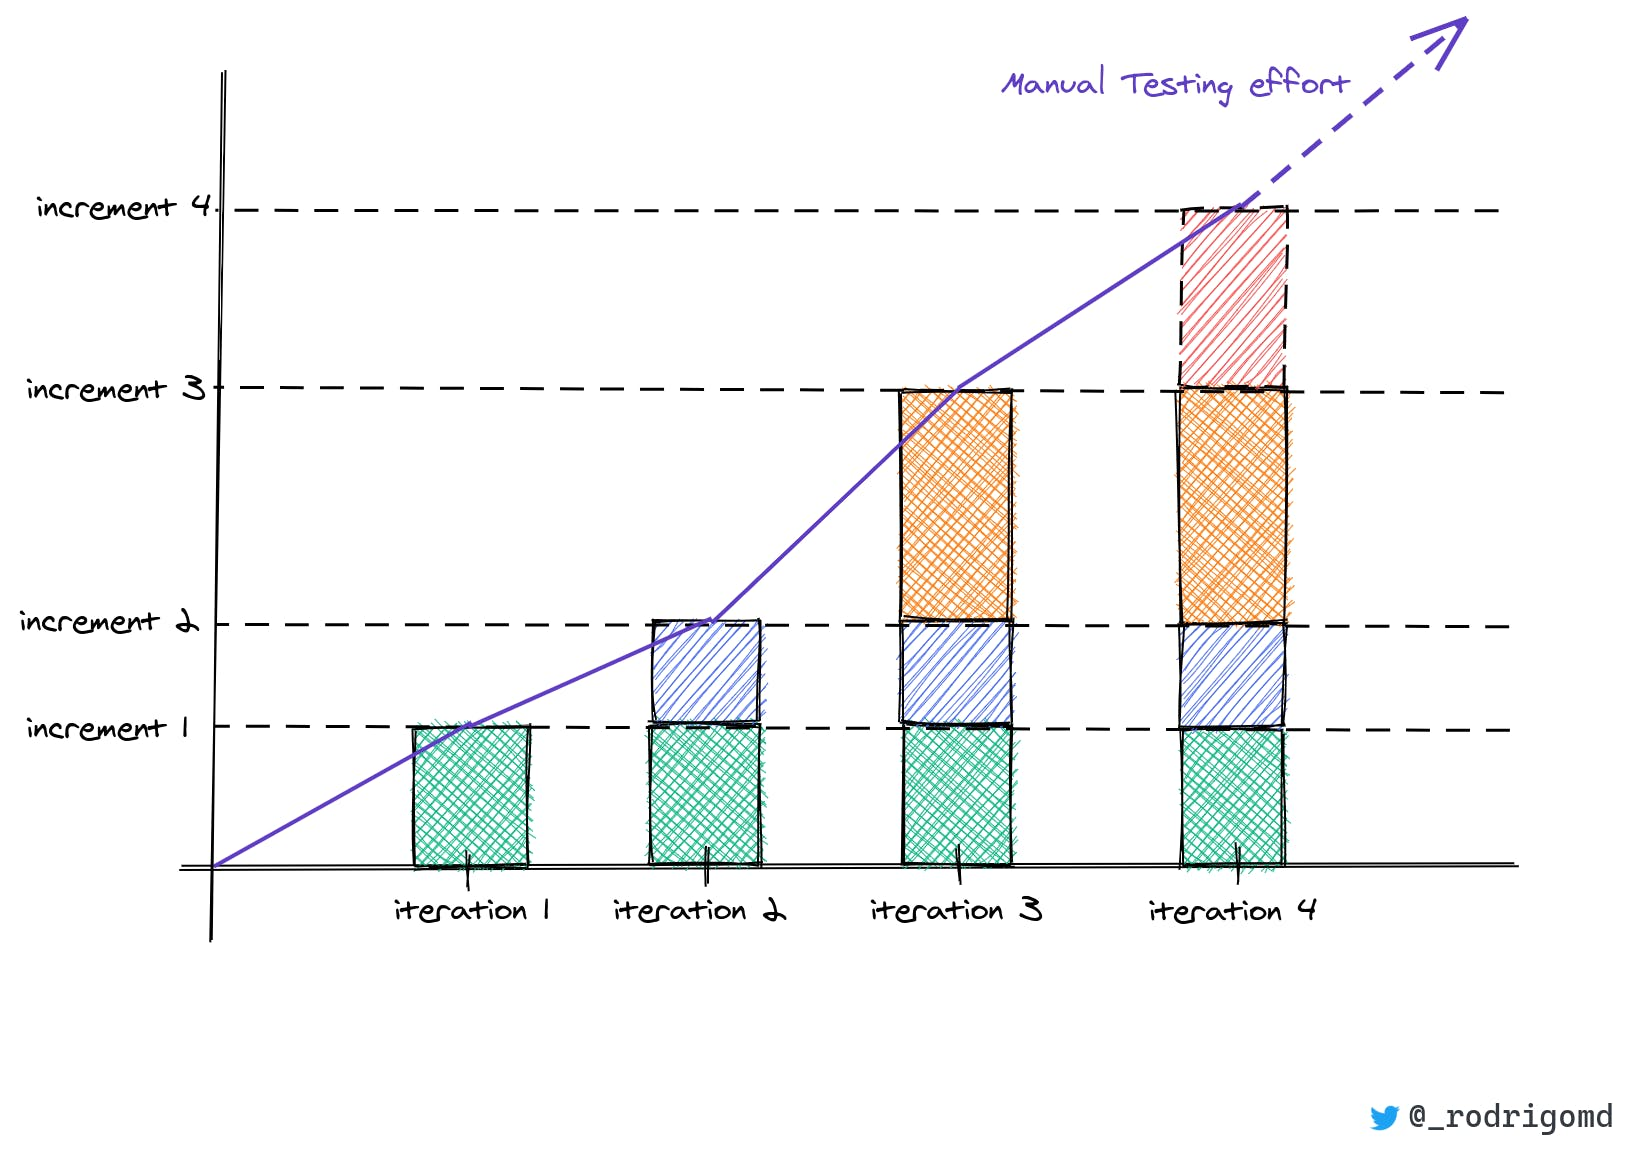 product increment vs iterations_with_logo_final.png